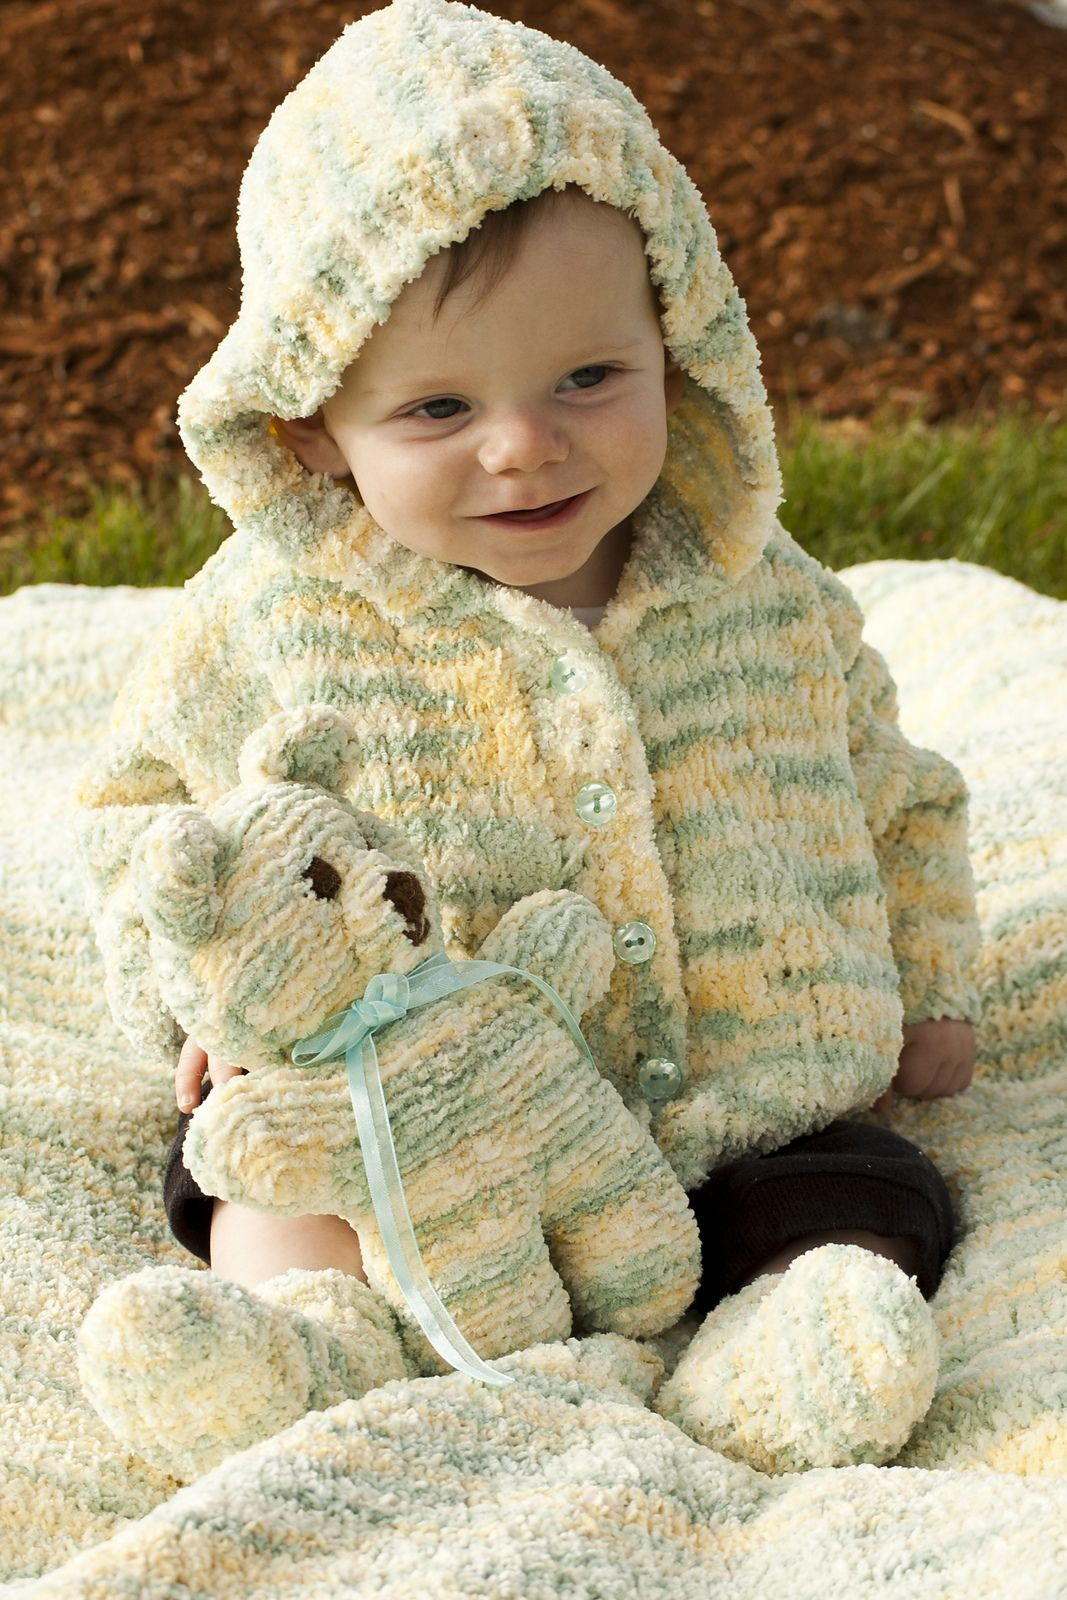 Free knitting pattern for winter warmer baby set with sweater toy free knitting pattern for winter warmer baby set with sweater toy socks and bankloansurffo Image collections